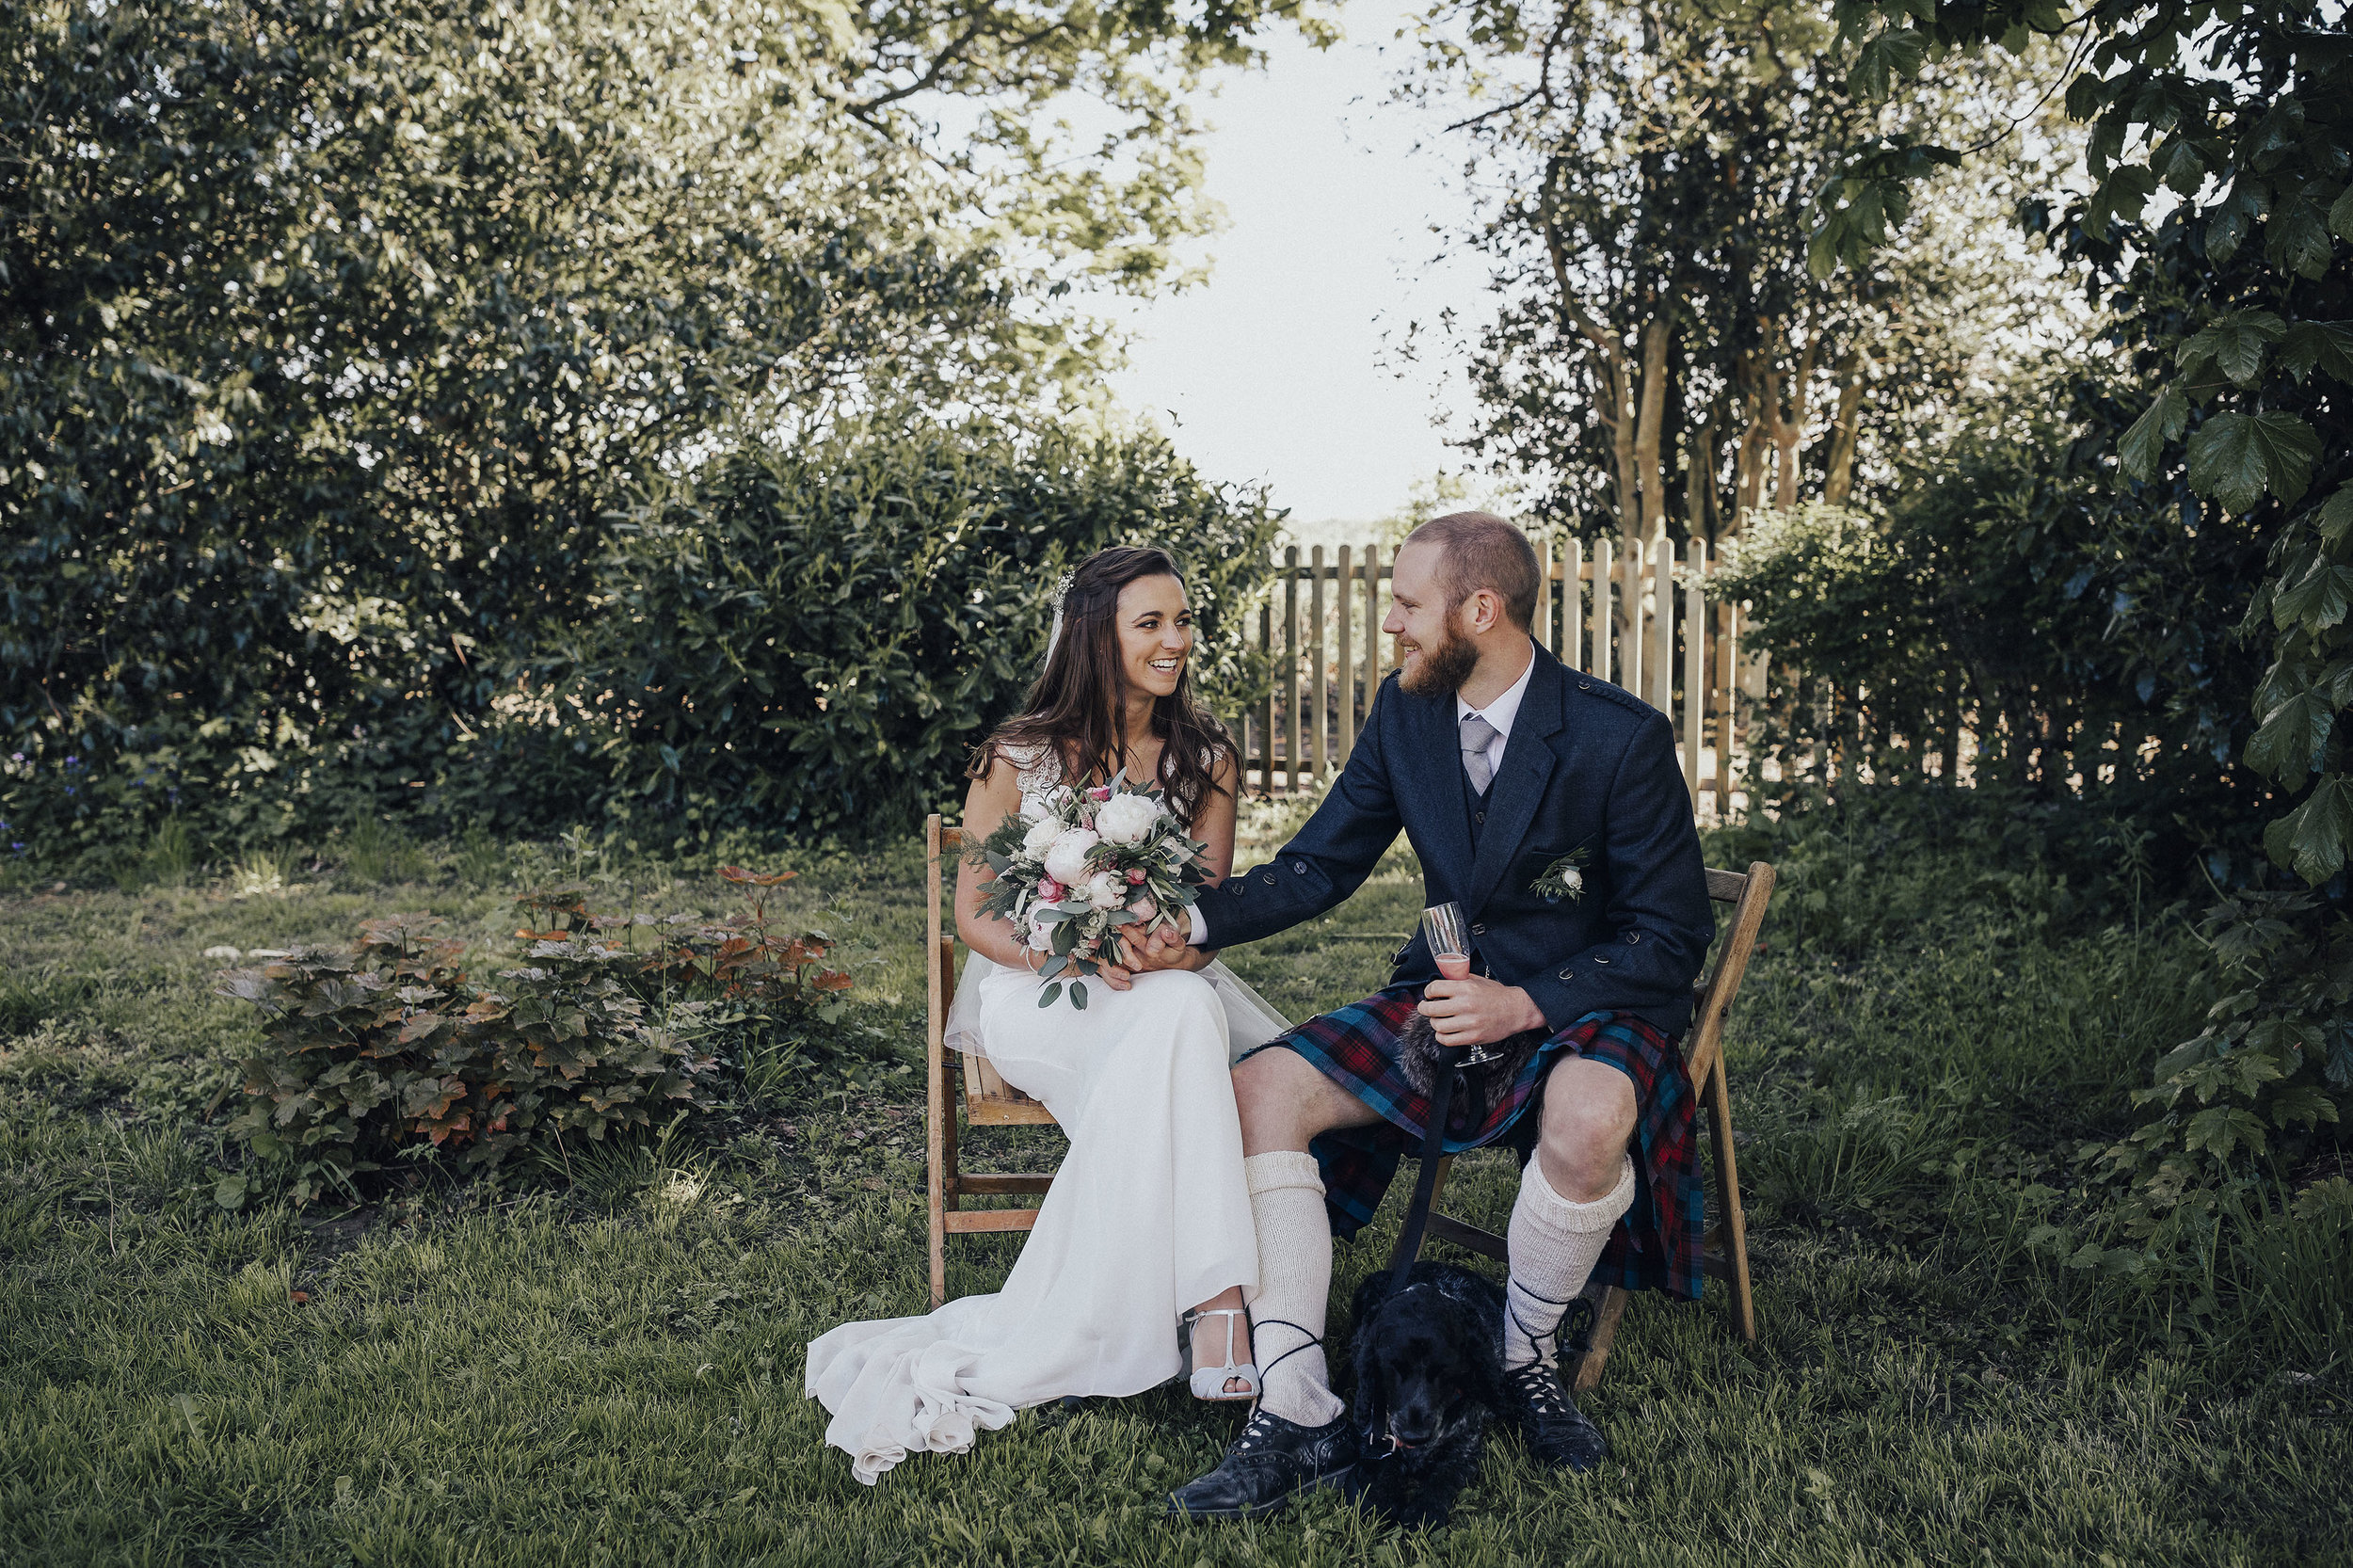 PJ_PHILLIPS_PHOTOGRAPHY_2018_SCOTLAND_WEDDING_PHOTOOGRAPHER_357.jpg